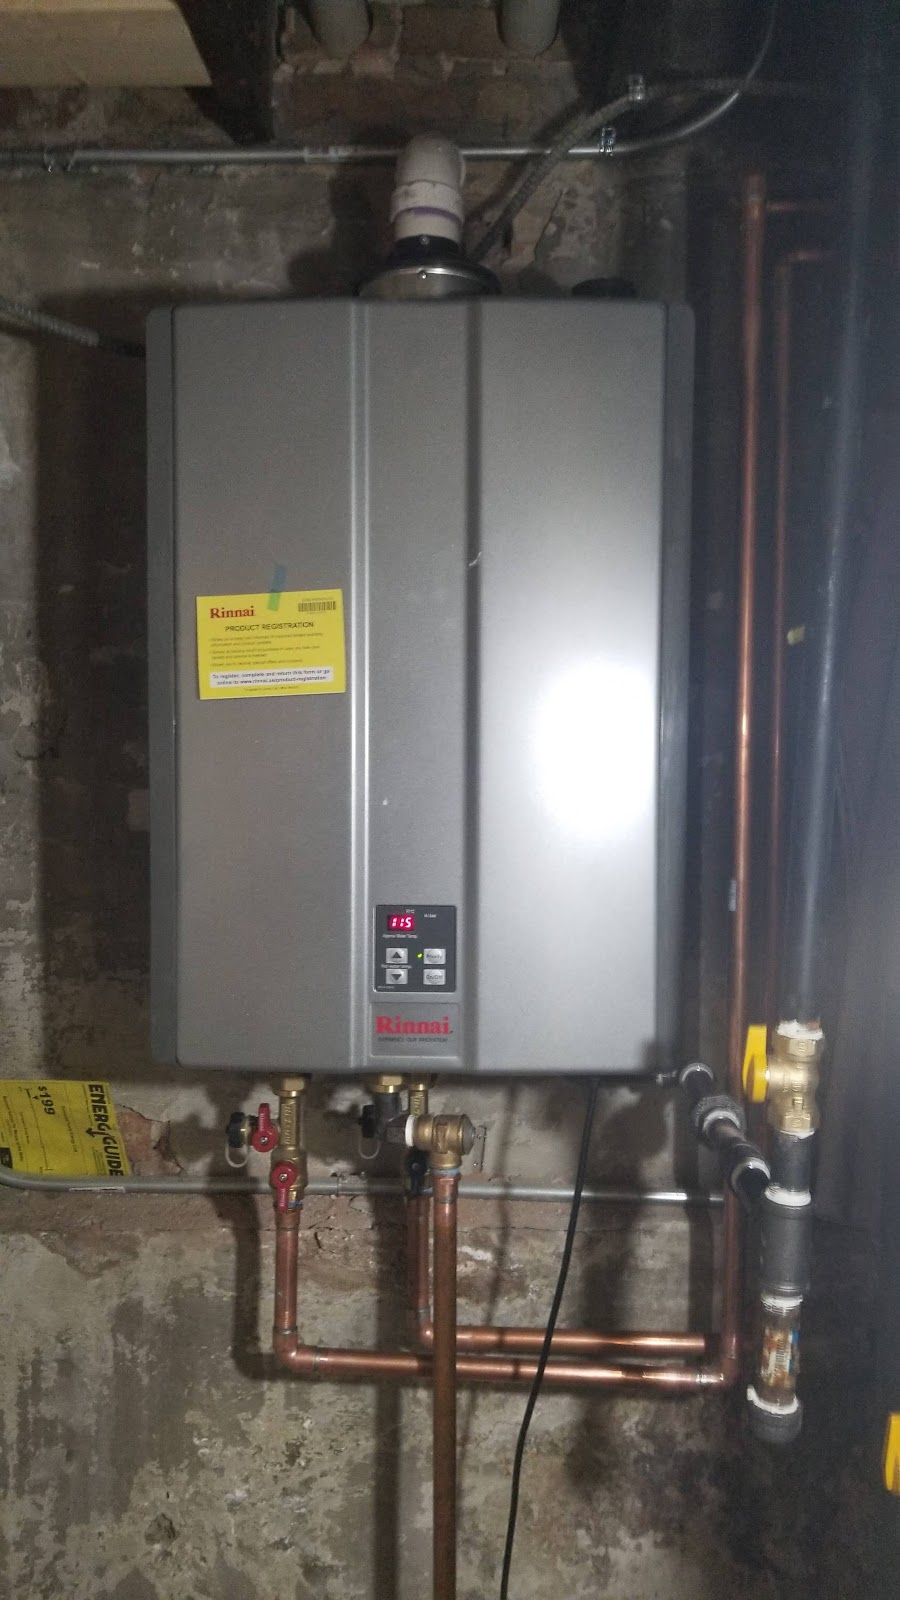 I & S General Plumbing LLC - plumber  | Photo 6 of 7 | Address: 1540 S Kilbourn Ave, Chicago, IL 60623, USA | Phone: (312) 763-0346